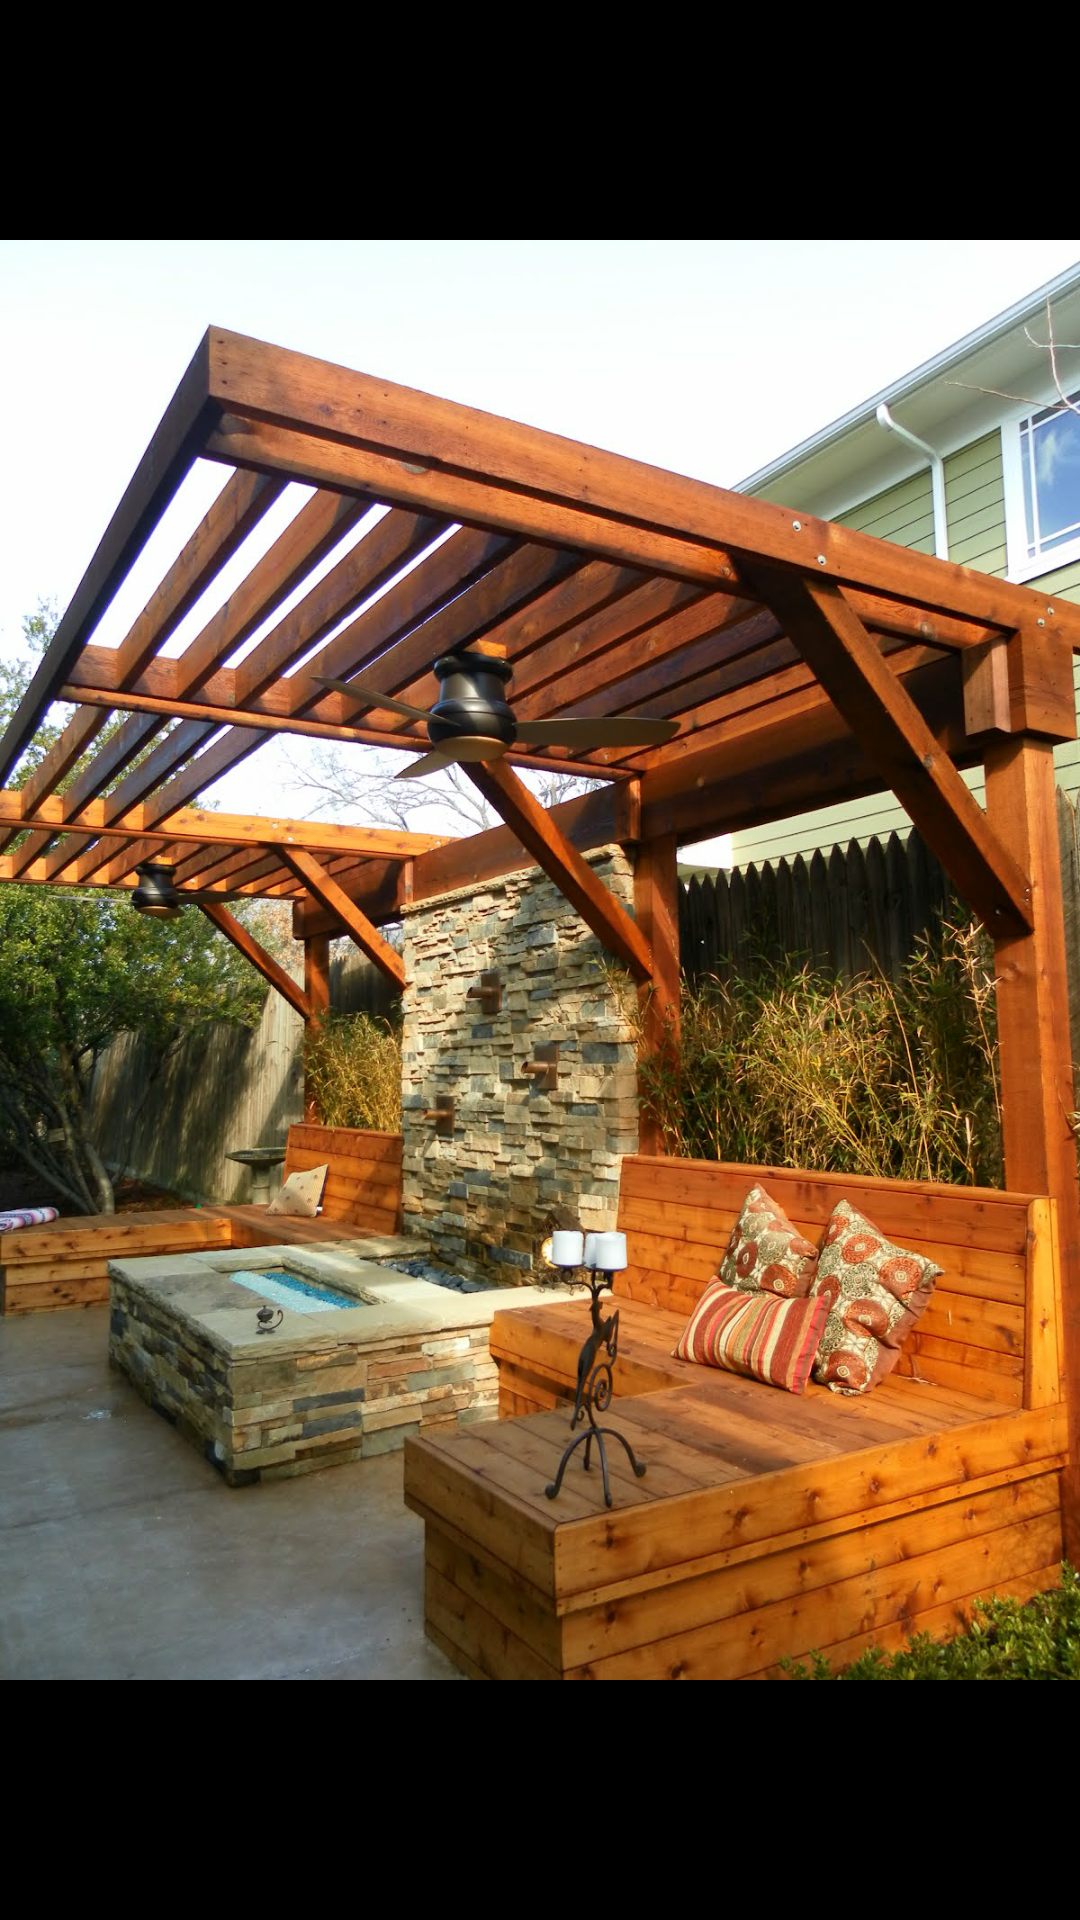 Outdoor Living and Design